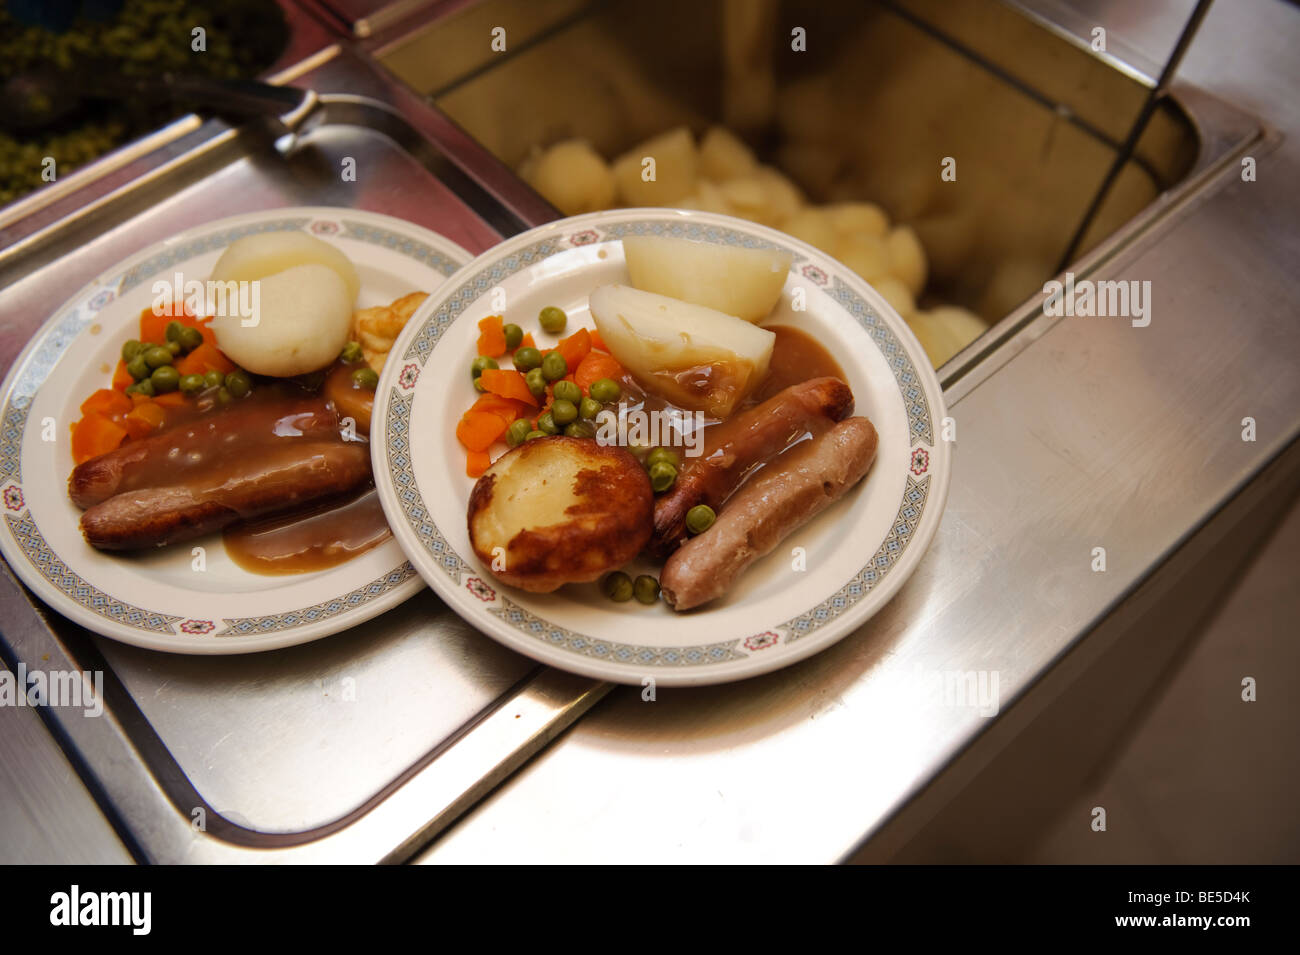 School dinners - sausage vegetables and potatoes -  served up on plates in a primary school canteen hall, Wales Stock Photo